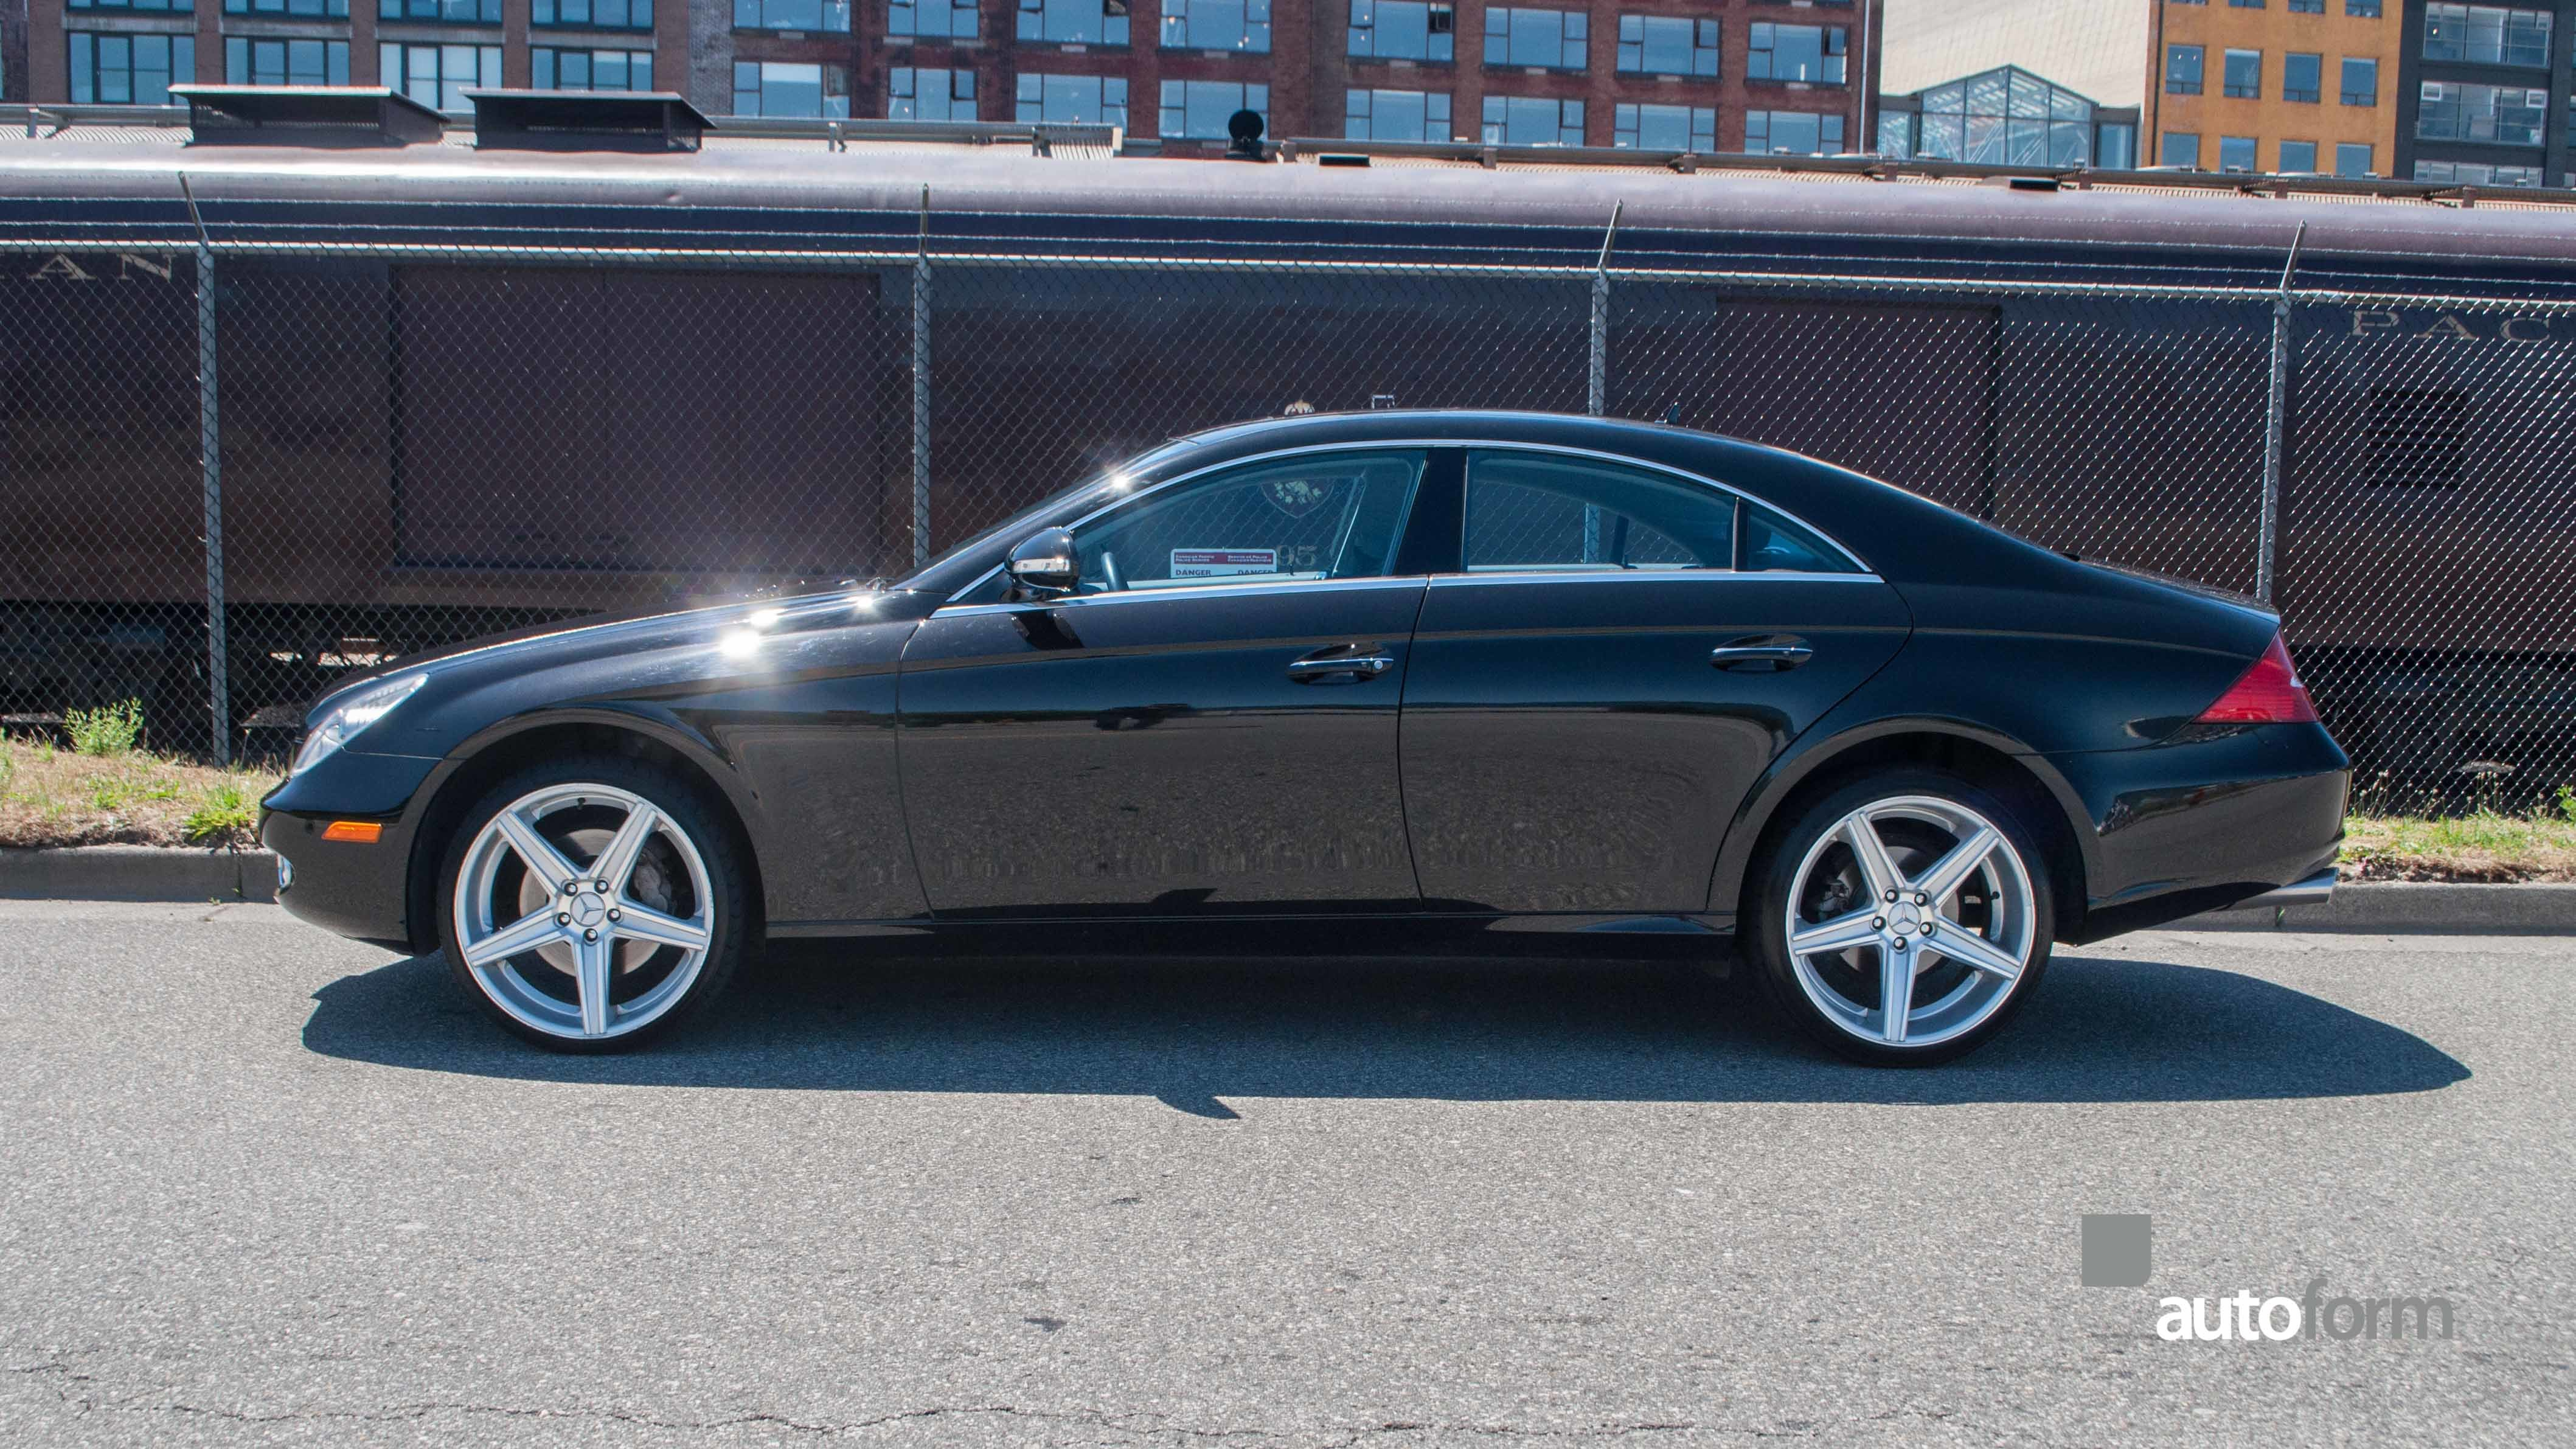 2007 mercedes benz cls550 autoform for 2007 mercedes benz cls